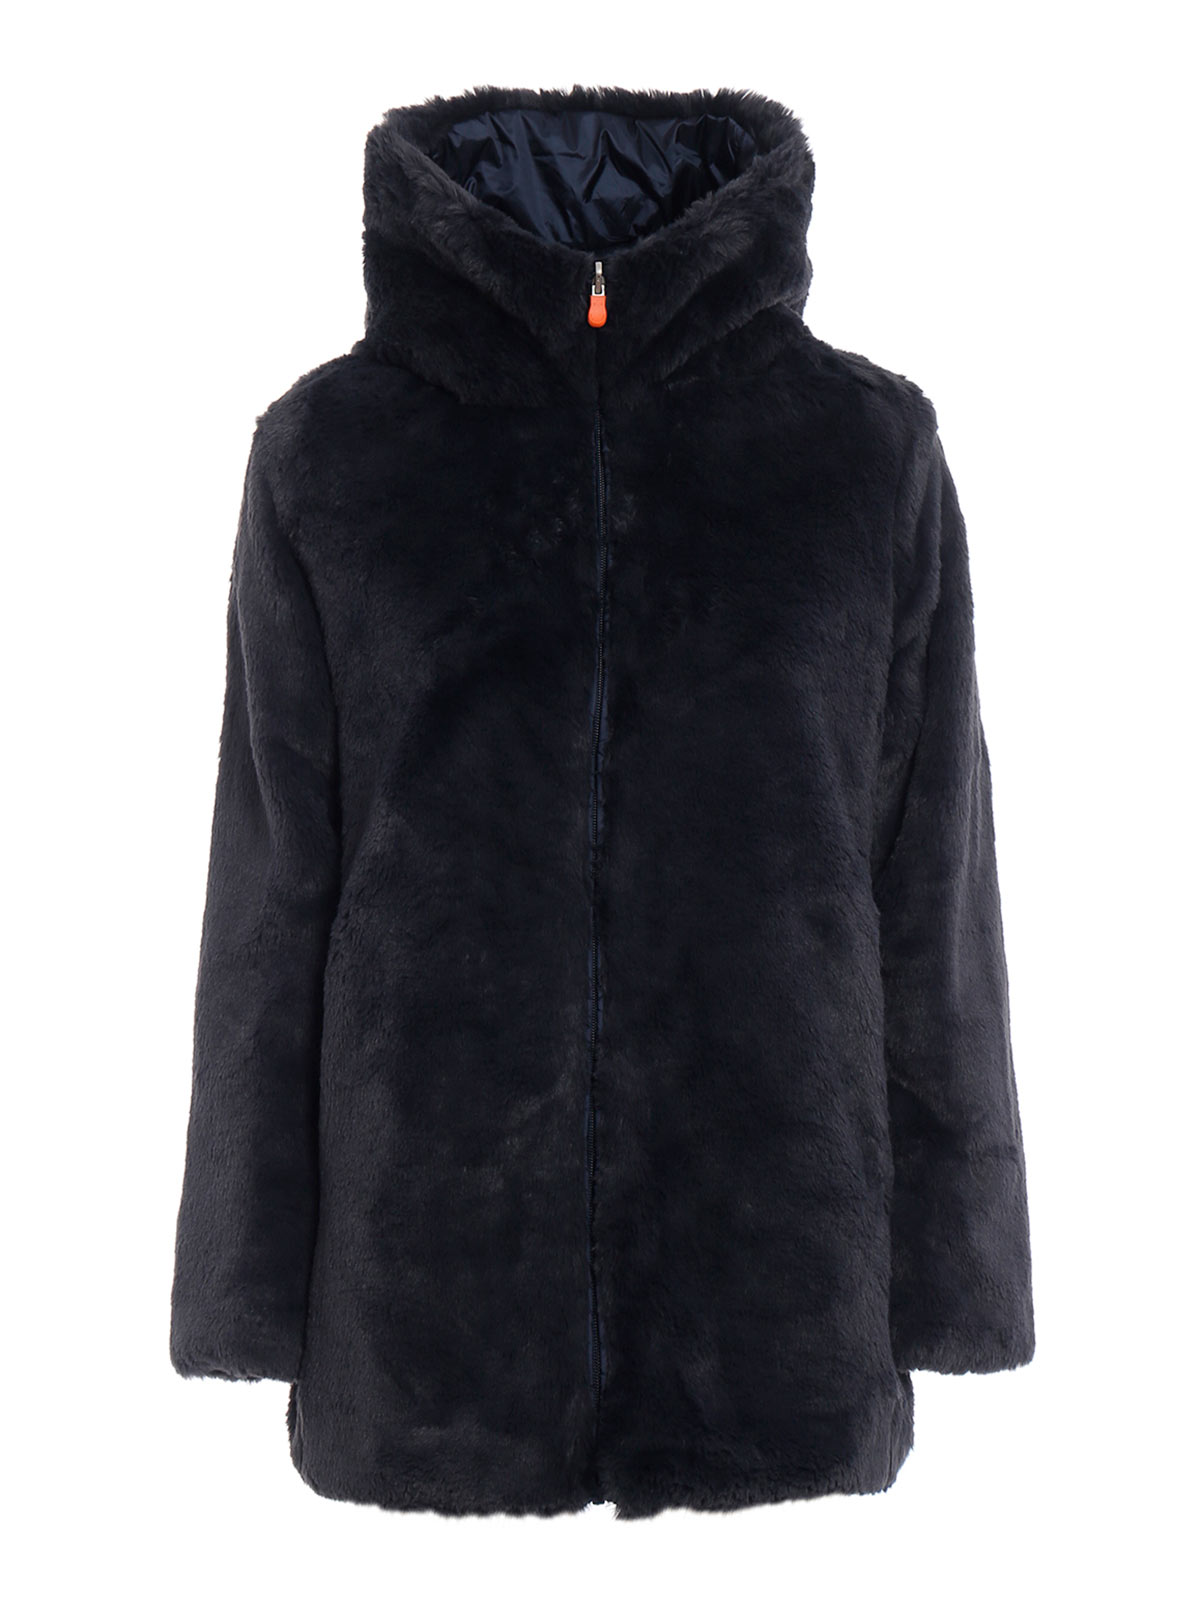 Picture of SAVE THE DUCK | Women's Reversible Jacket D4007W FURY7